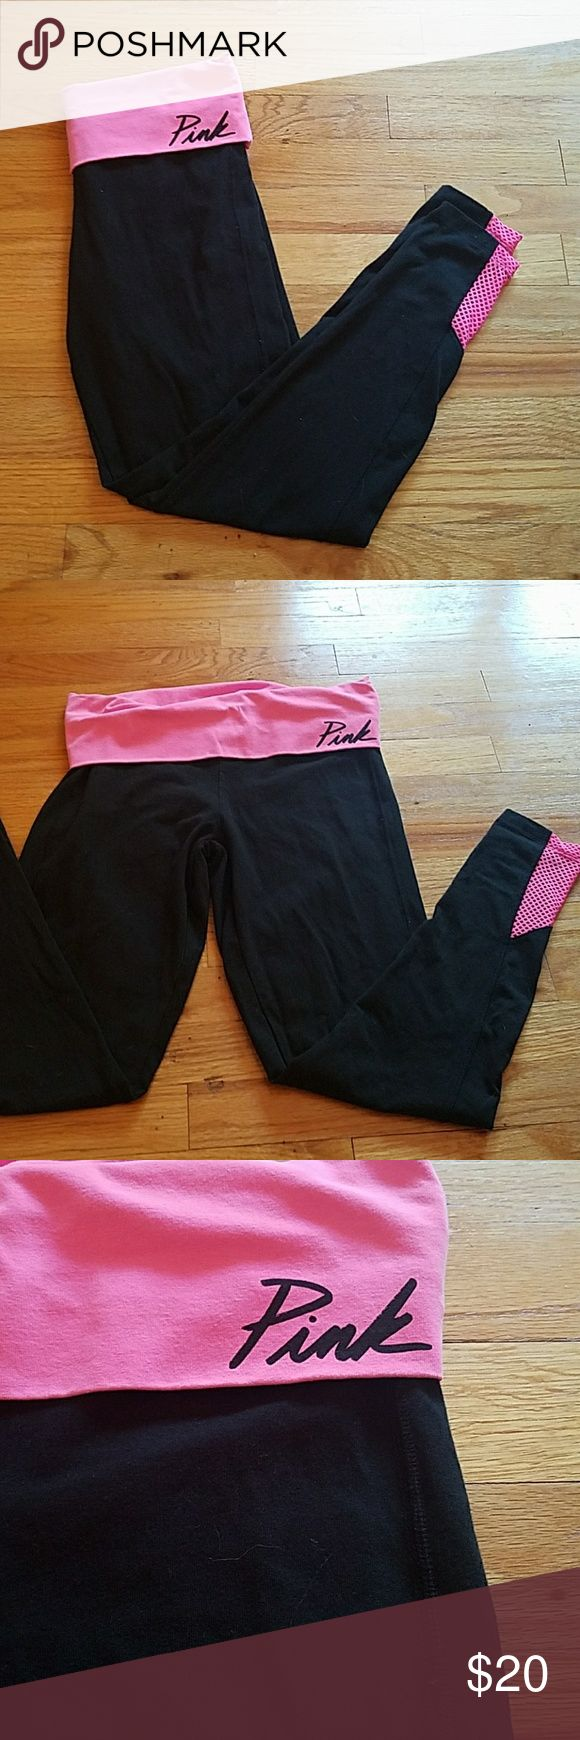 PINK yoga pants medium A pair of pink yoga pants size Medium  Pink fold over waist band  Pink mesh at the ankles Super comfy pair of yoga pants  Barely worn  No damage or worn spots PINK Victoria's Secret Pants Leggings